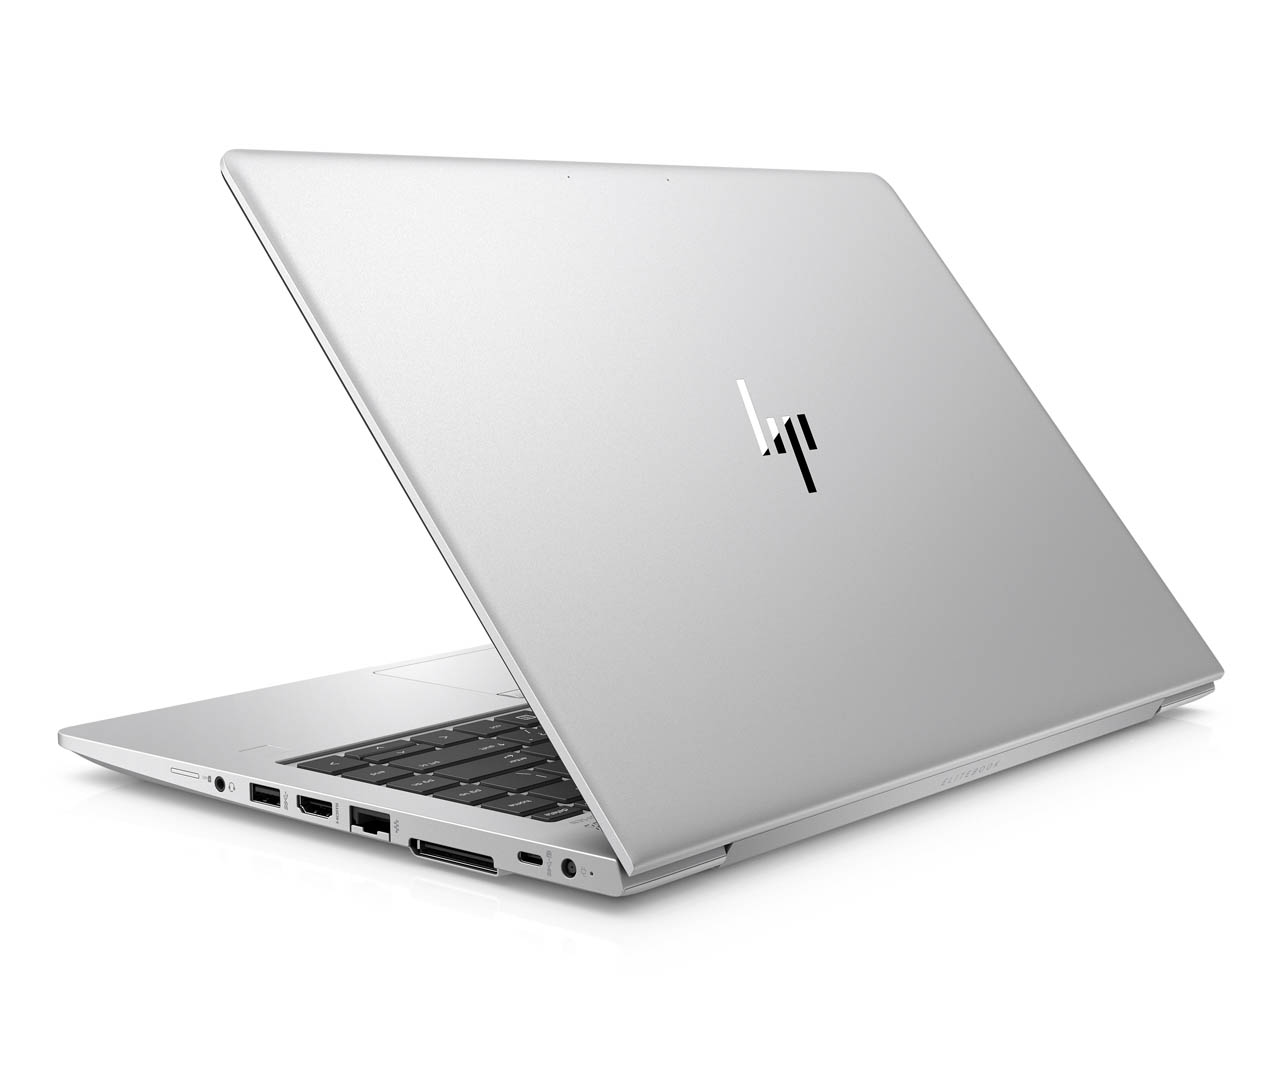 HP annuncia gli EliteBook 700 G6 e l'HP mt45 Mobile Thin Client 14